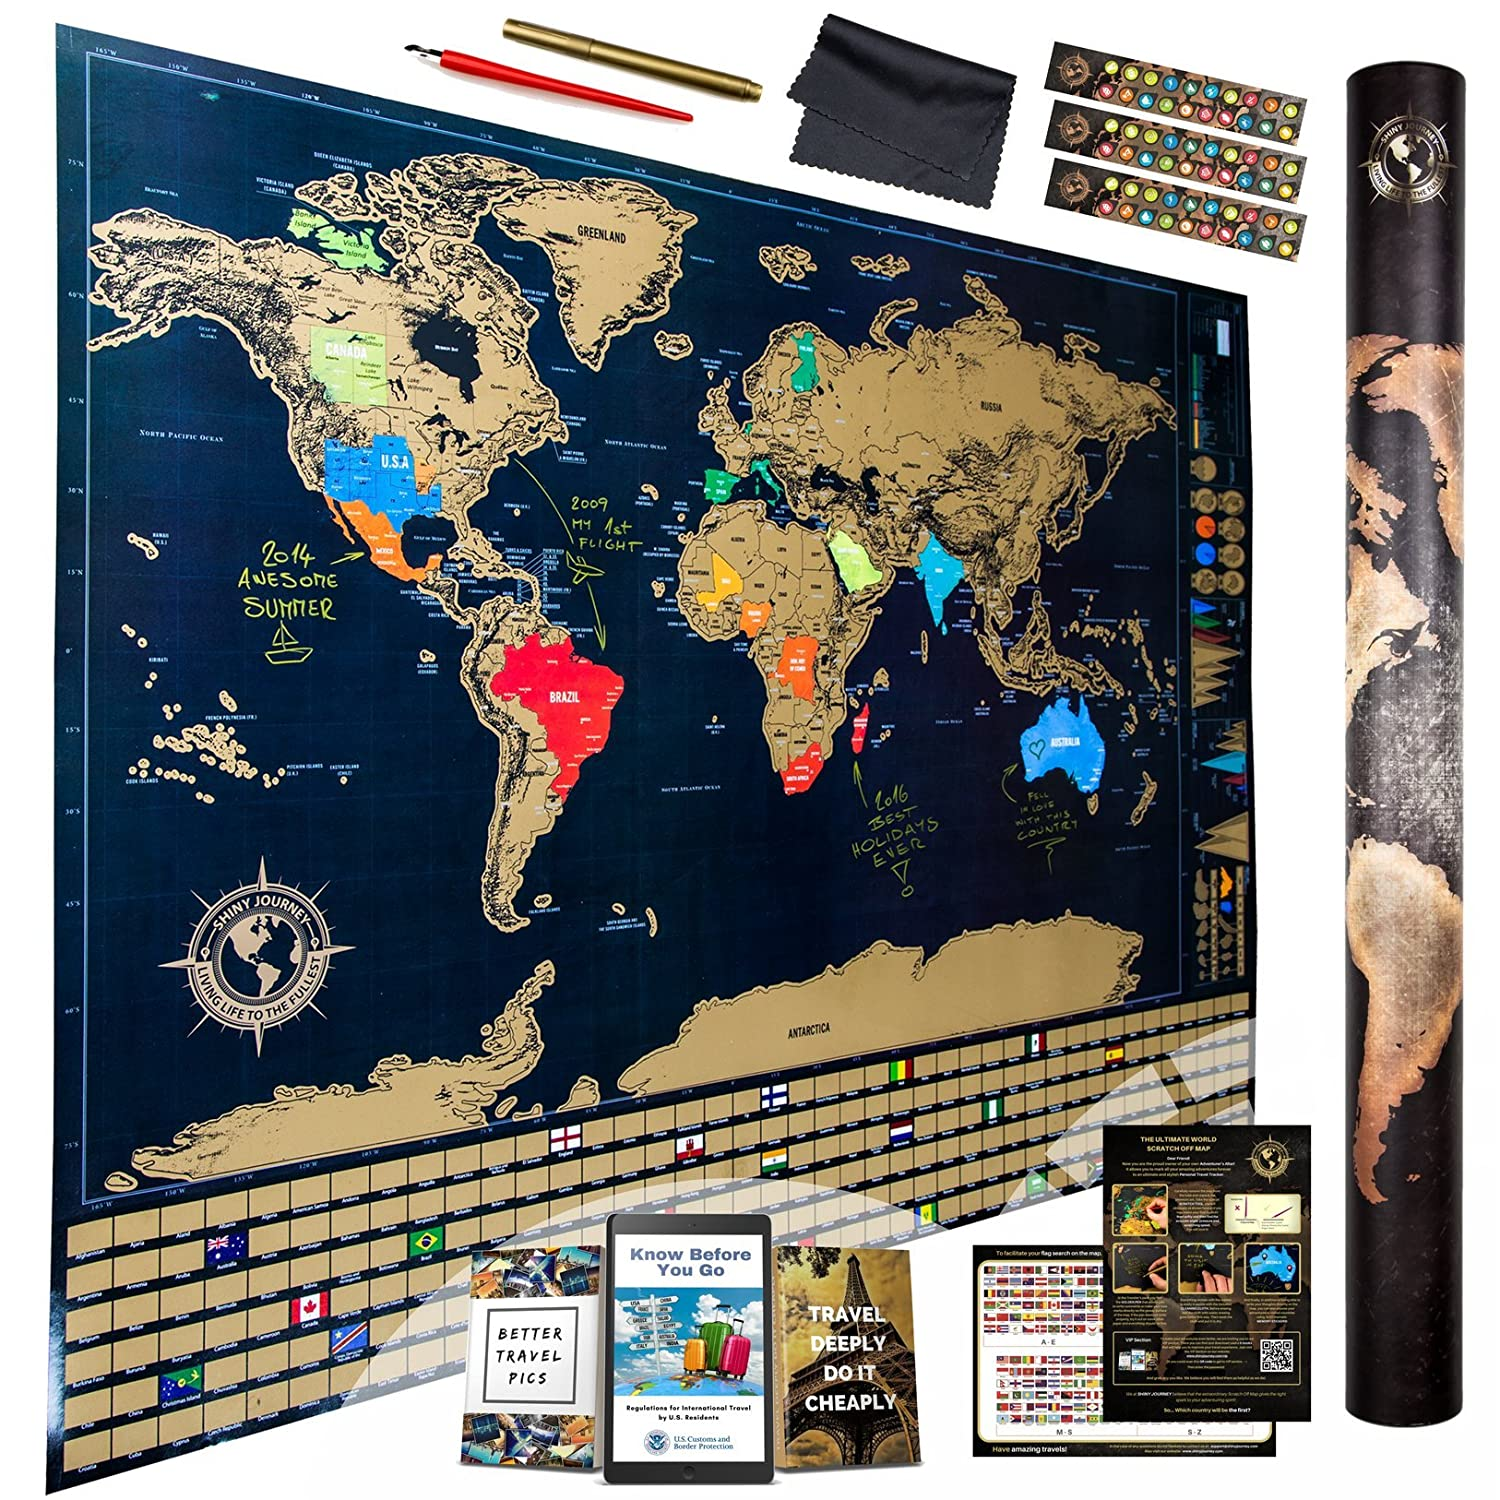 Wall Maps Amazoncom Office School Supplies Education Crafts - Us product map